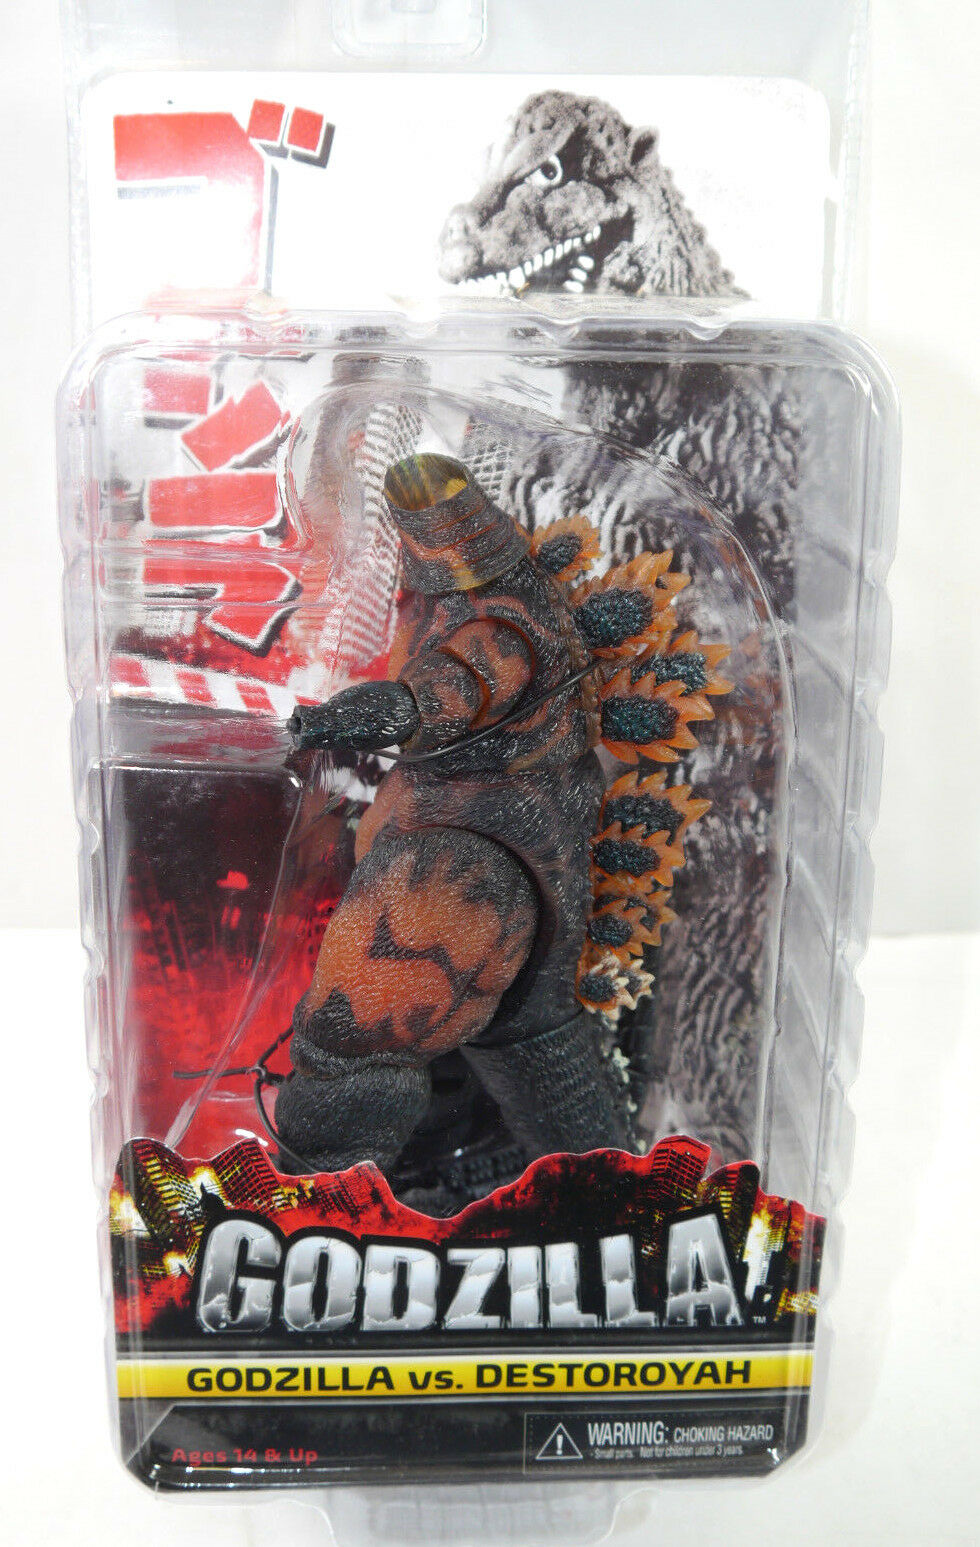 Godzilla Vs.Destgoldyah Classic Burning 1995 Figurine D'Action Neca Neuf (L)